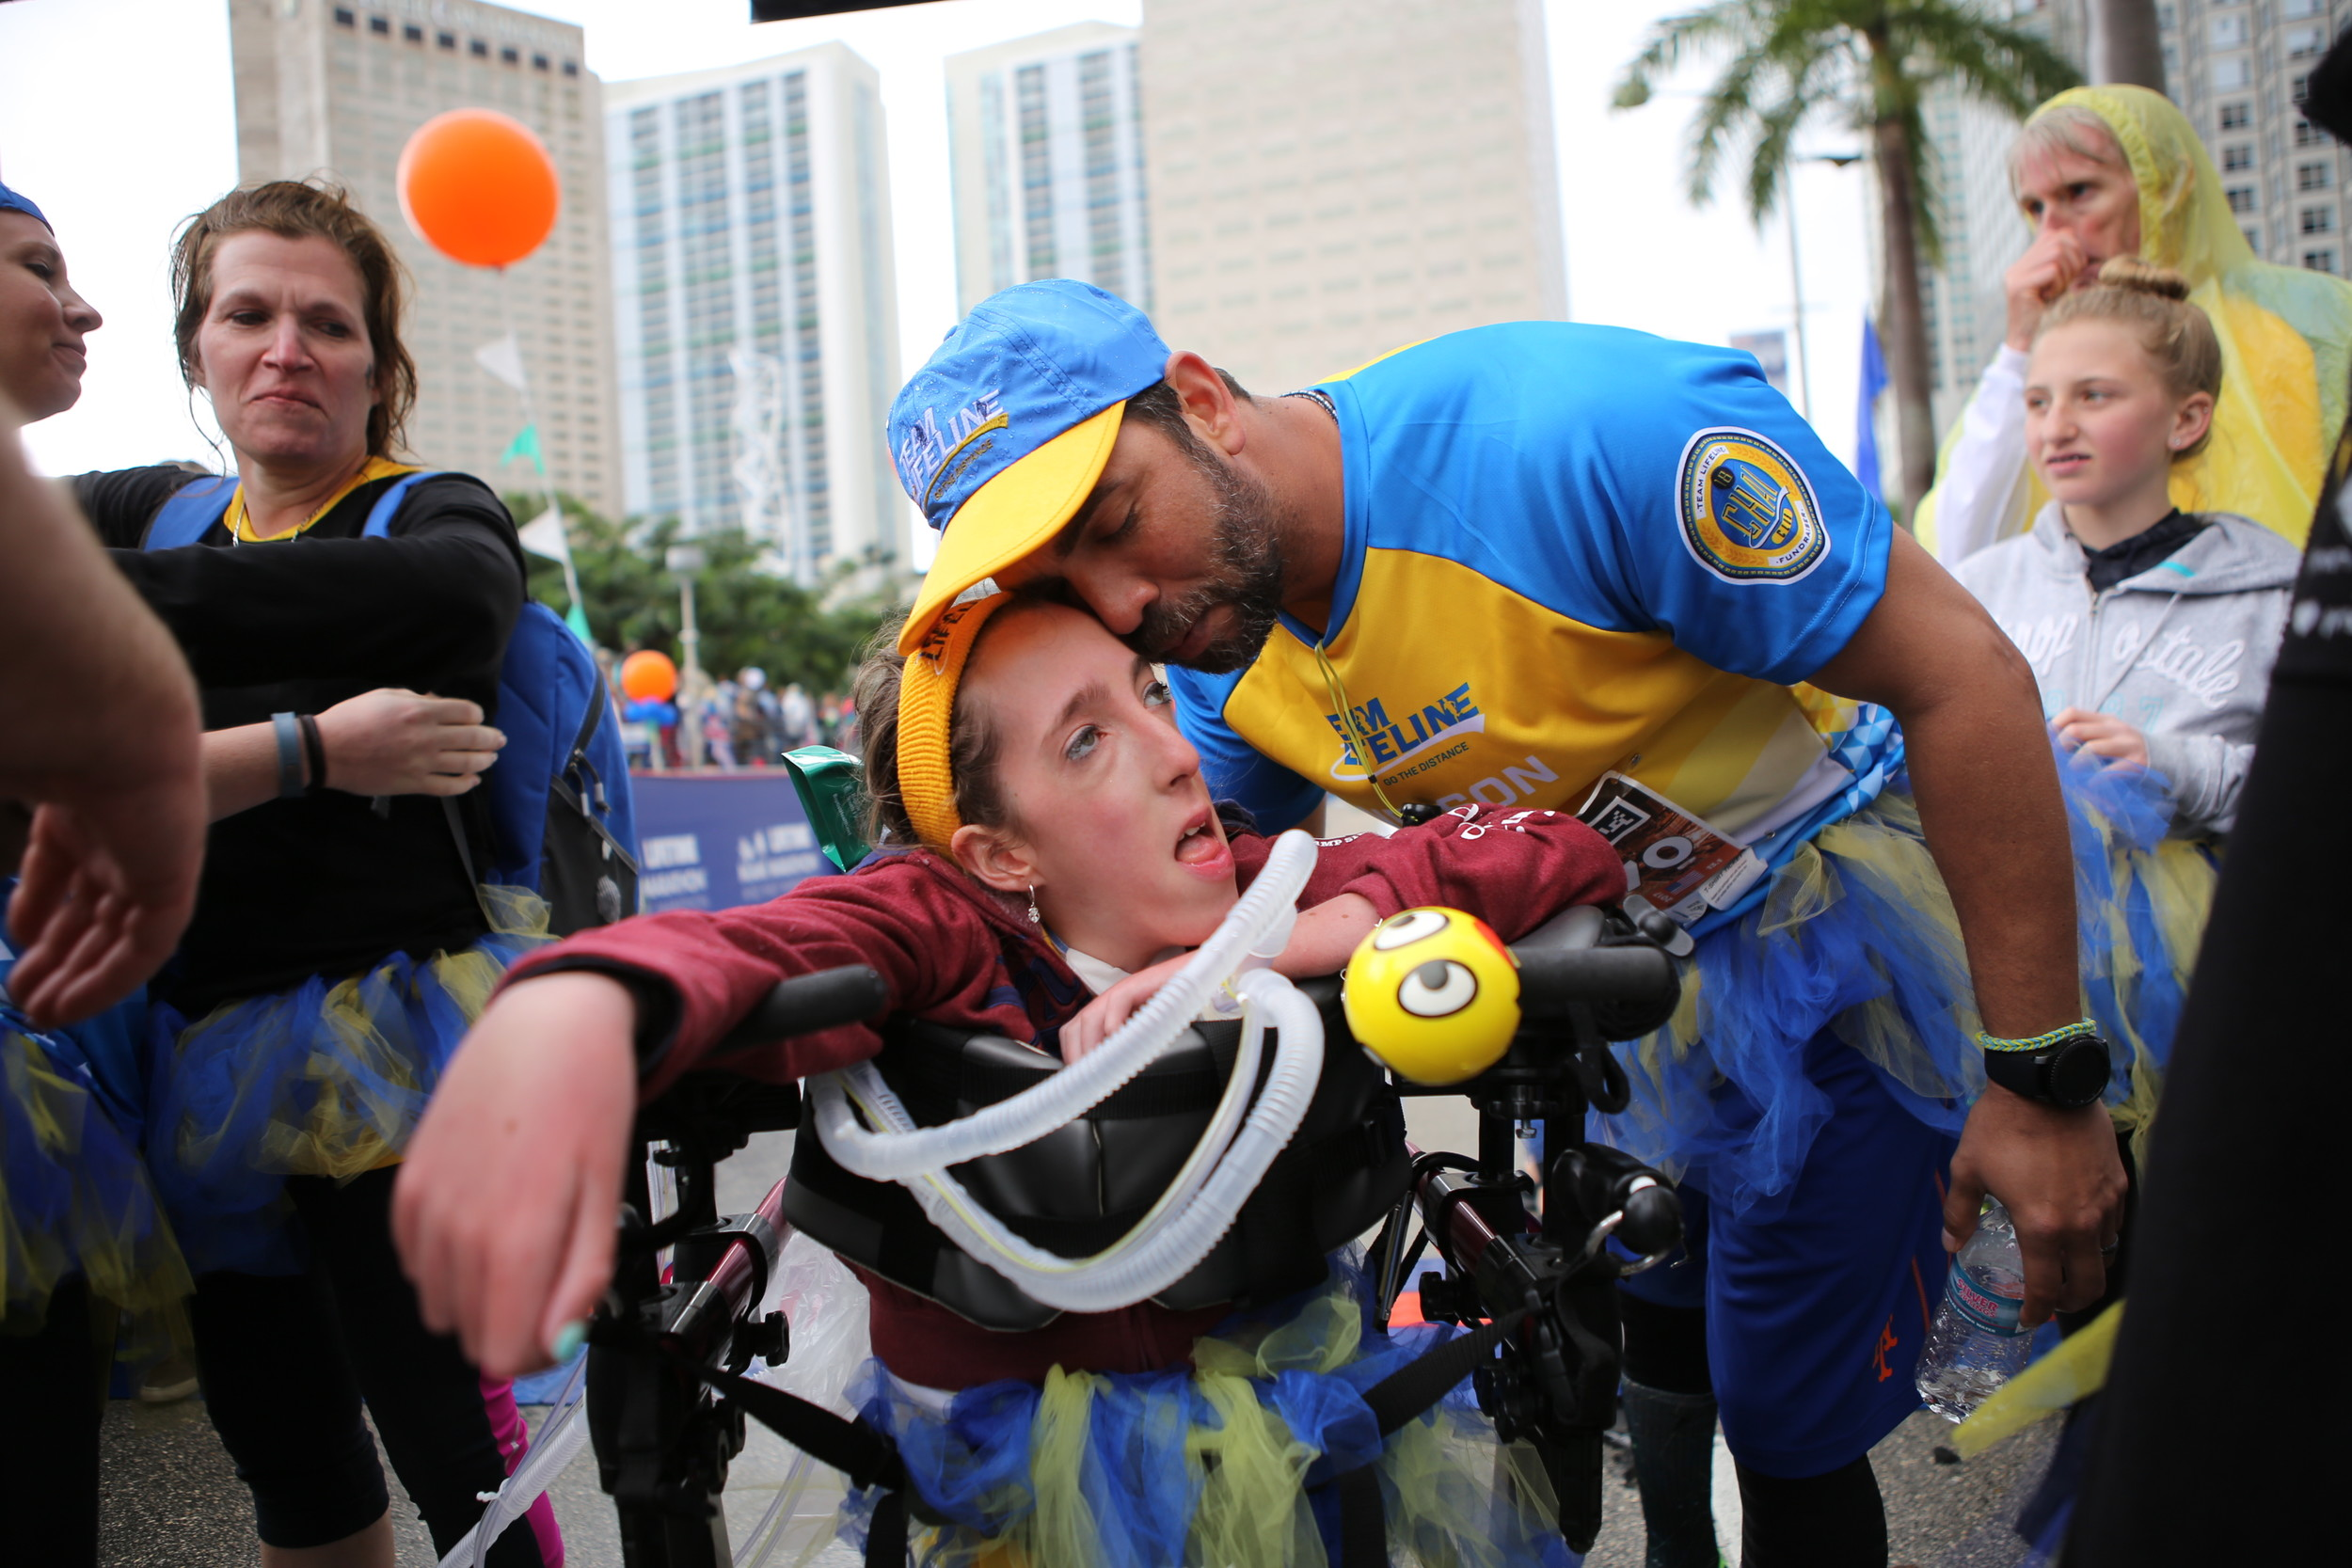 West Hempstead resident Peri Finkelstein with former New York Mets pitcher Nelson Figueroa at the Miami Half Marathon on Jan. 28.